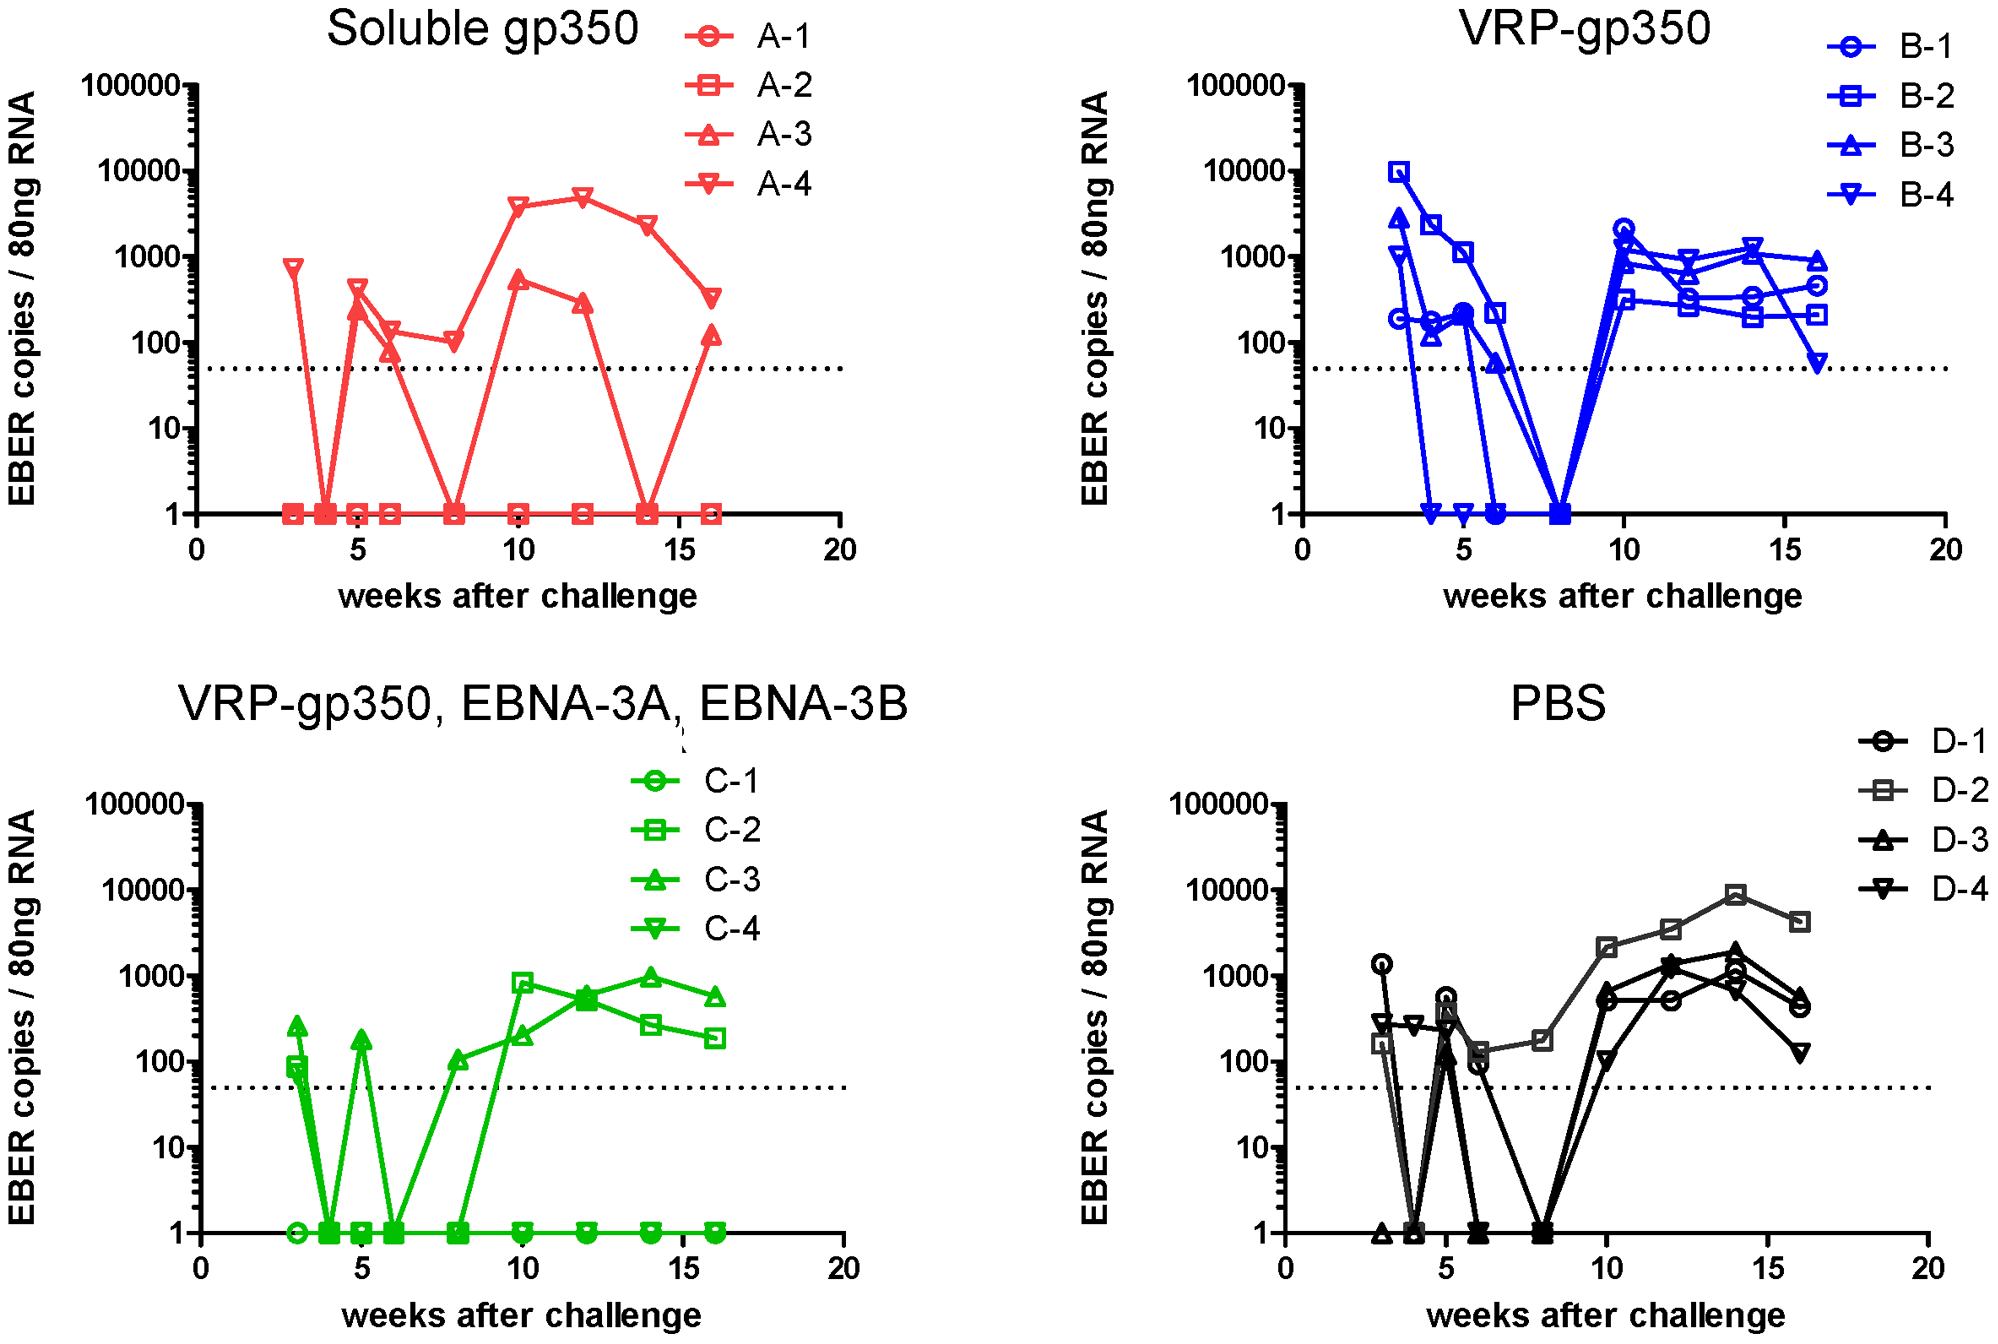 Detection of rhesus LCV EBER1 in the blood of monkeys immunized with soluble gp350, VRP-gp350, a combination of VRP-350, VRP-EBNA-3A, and VRP-EBNA-3B, or PBS.